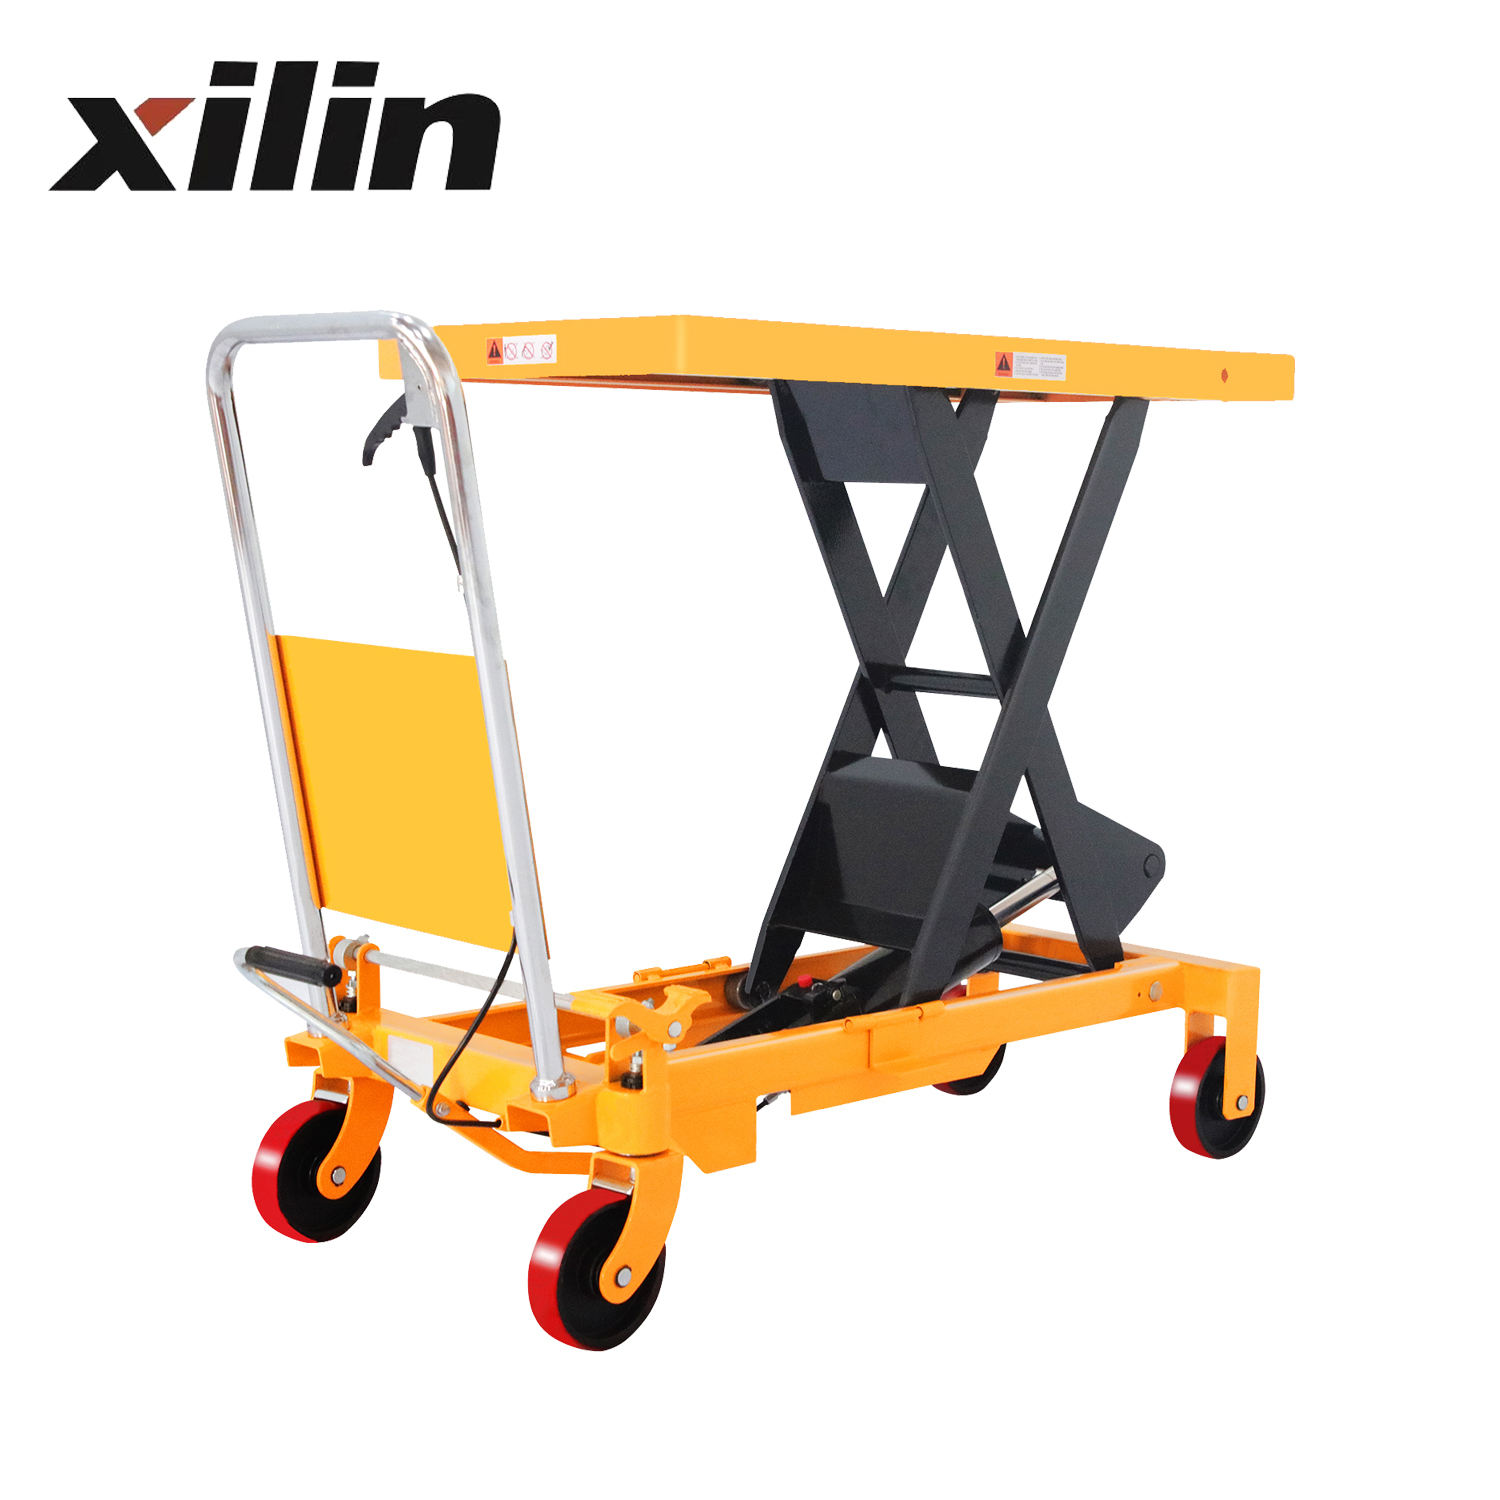 Xilin 800kg 1760lbs Good Quality Hydraulic Single Scissor Lift Table lifttables